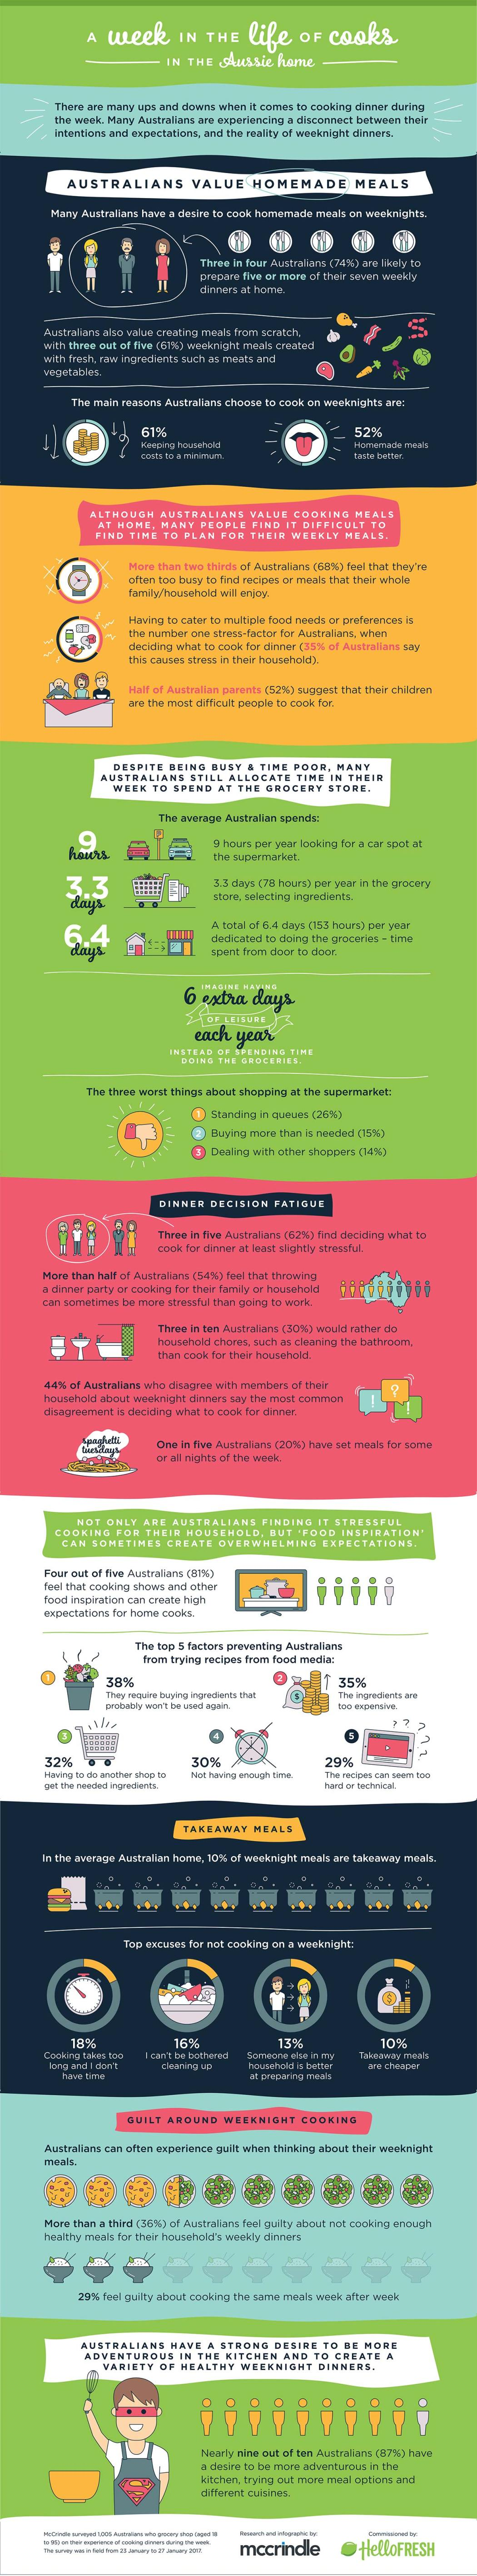 How do Australians cook and eat infographic